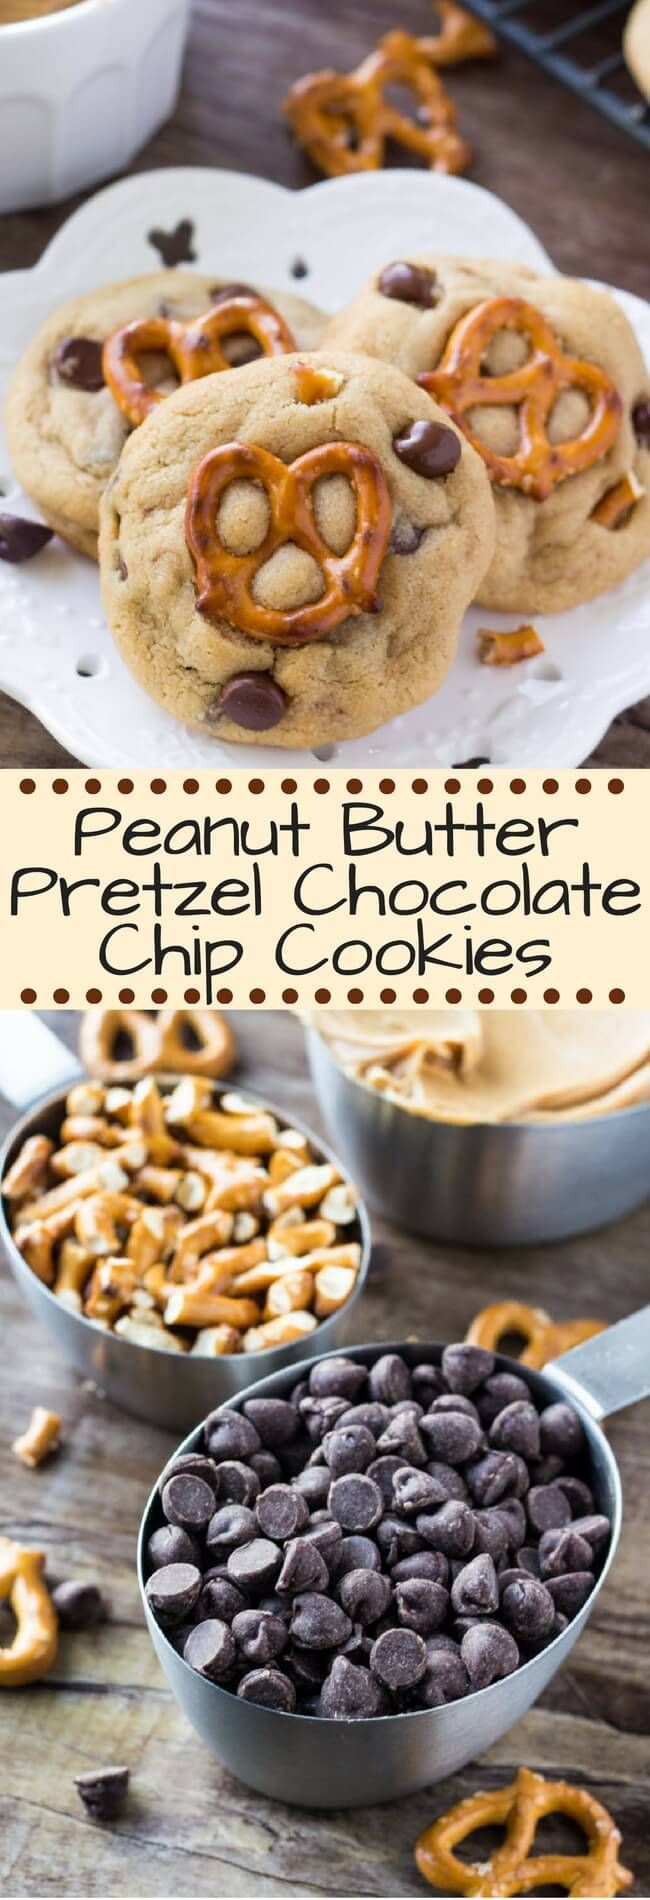 Peanut Butter Pretzel Chocolate Chip Cookies - salty, sweet, chewy, crunchy goodness in cookie form. These cookies have it all! #peanutbuttercookies #peanutbutterpretzel #chocolatechipcookies